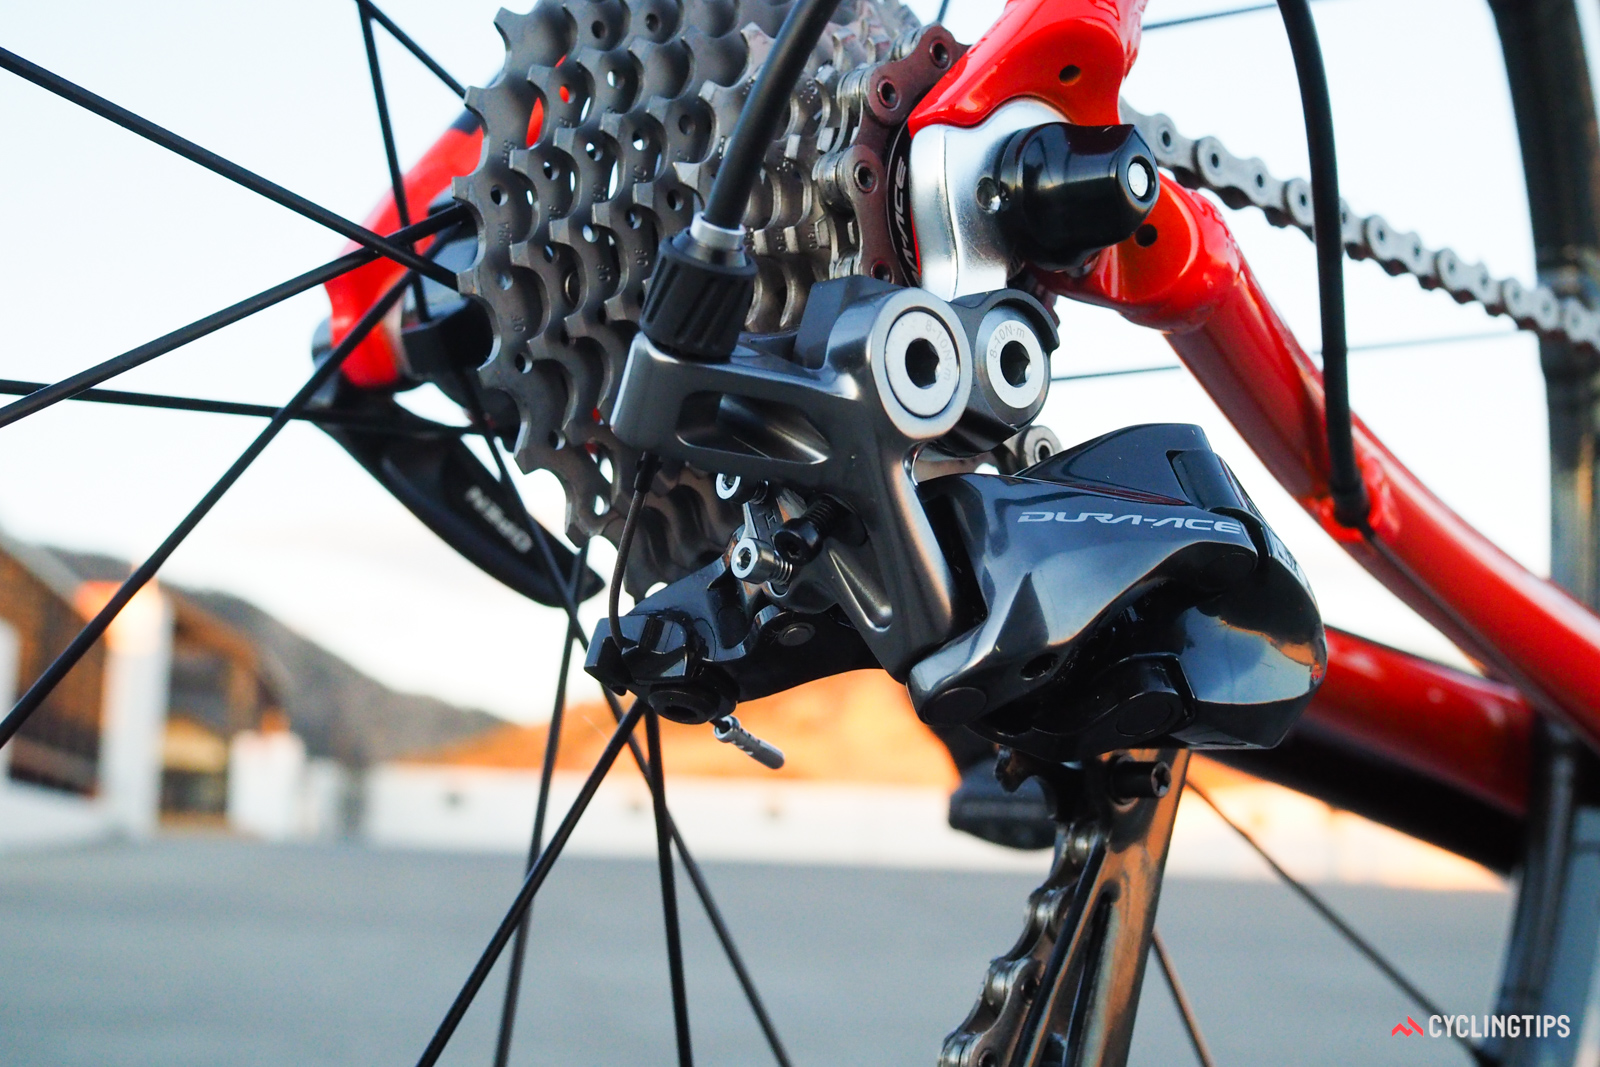 The cable path is far more direct on this latest Shimano Dura-Ace 9100 rear derailleur than the previous edition, which bodes well for cable durability. Limit screws have switched from Phillips heads to Allen heads, too.